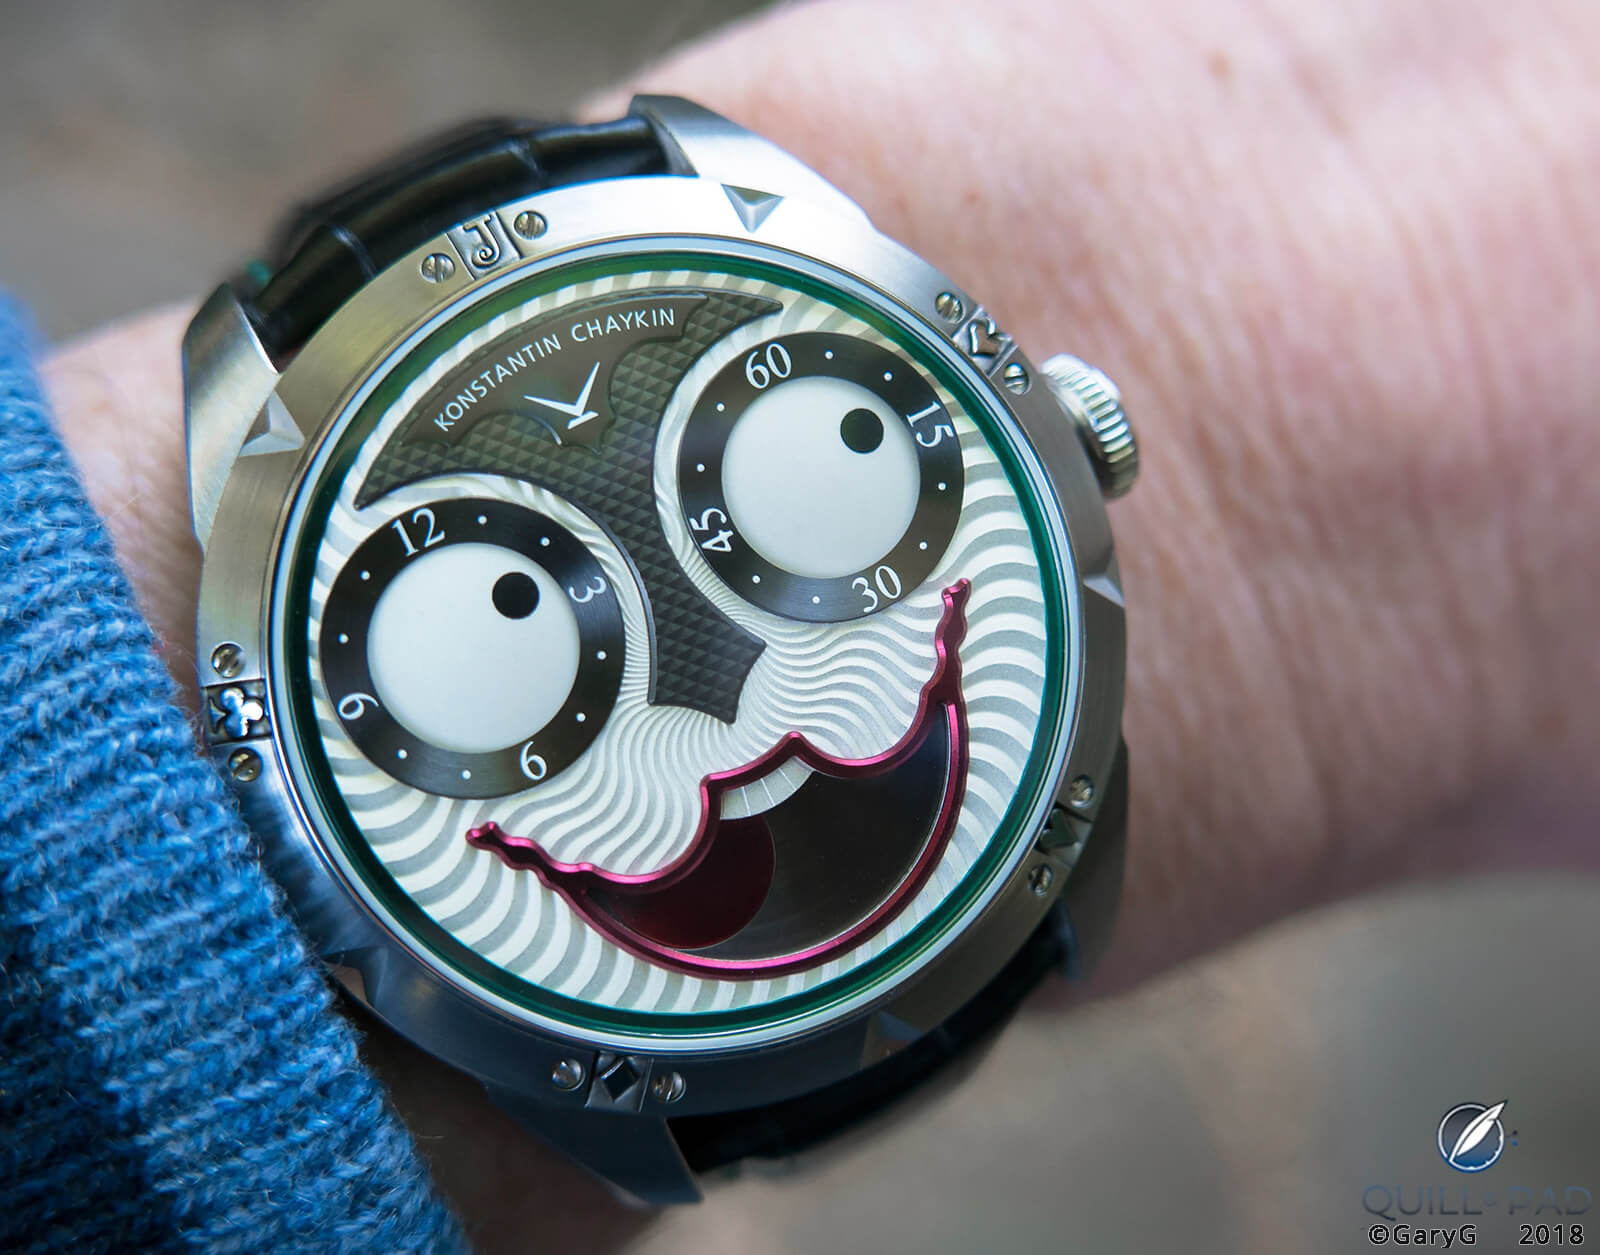 Don't worry, be happy: Joker on the wrist at 2:10 pm